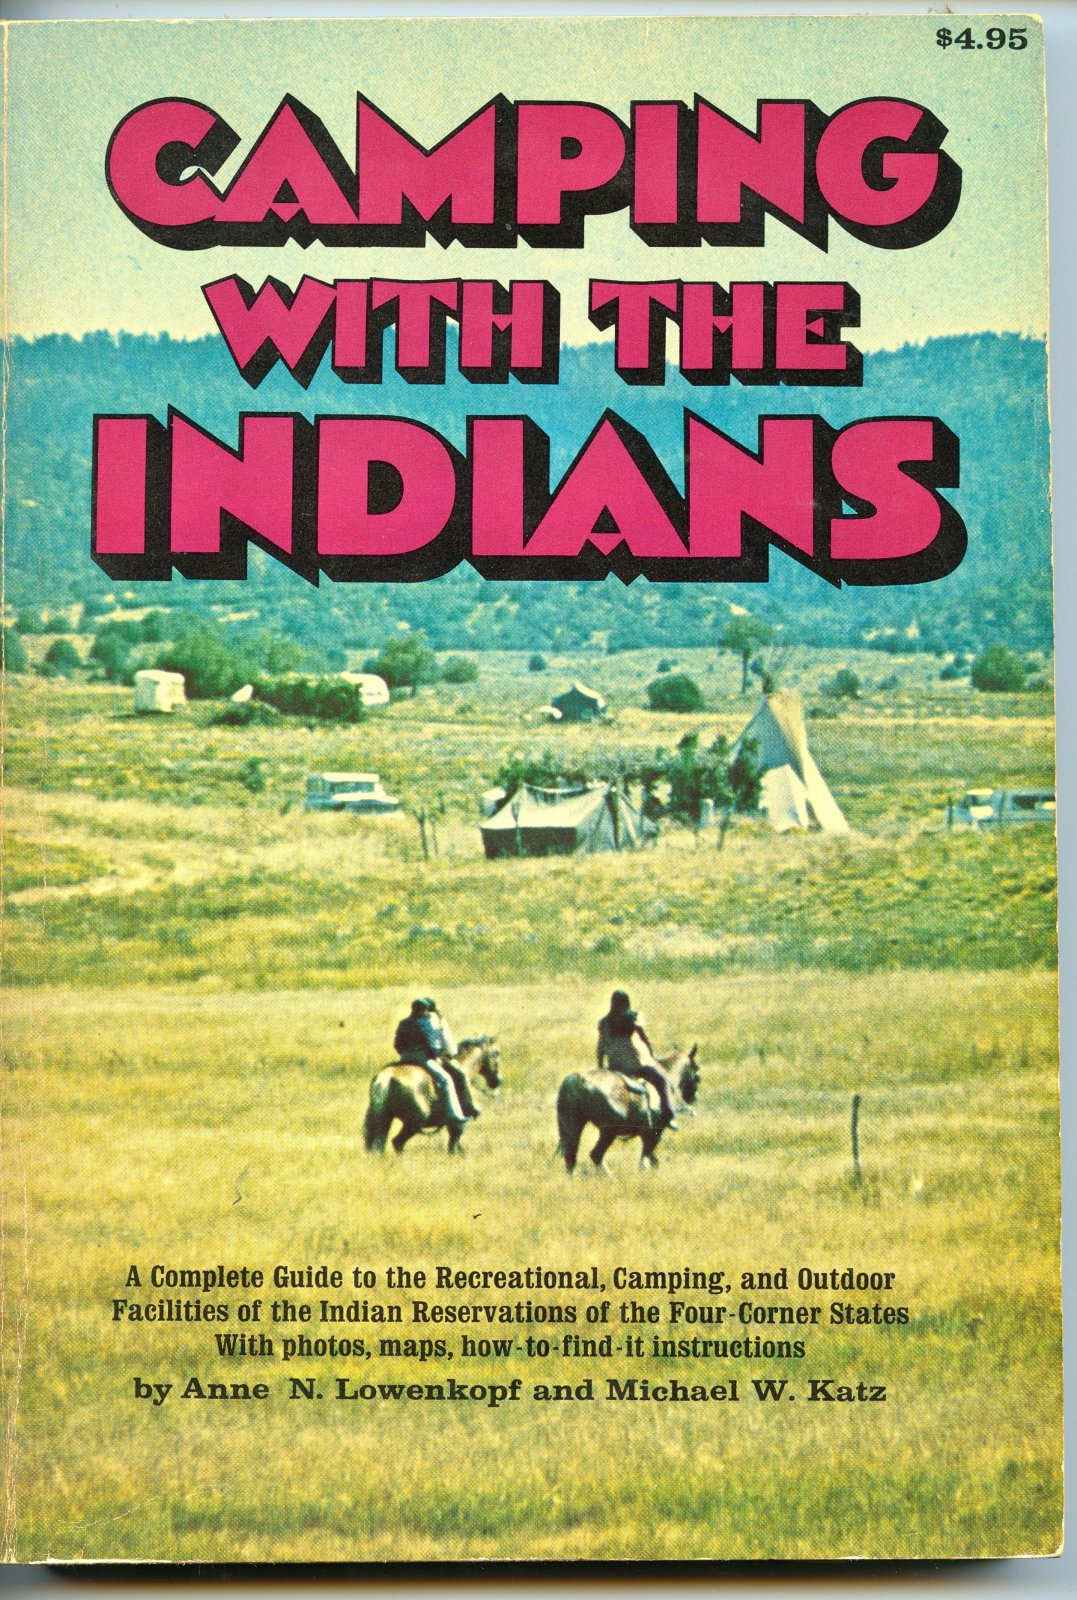 Click image for larger version  Name:Camping with the Indians.jpg Views:91 Size:497.3 KB ID:258009